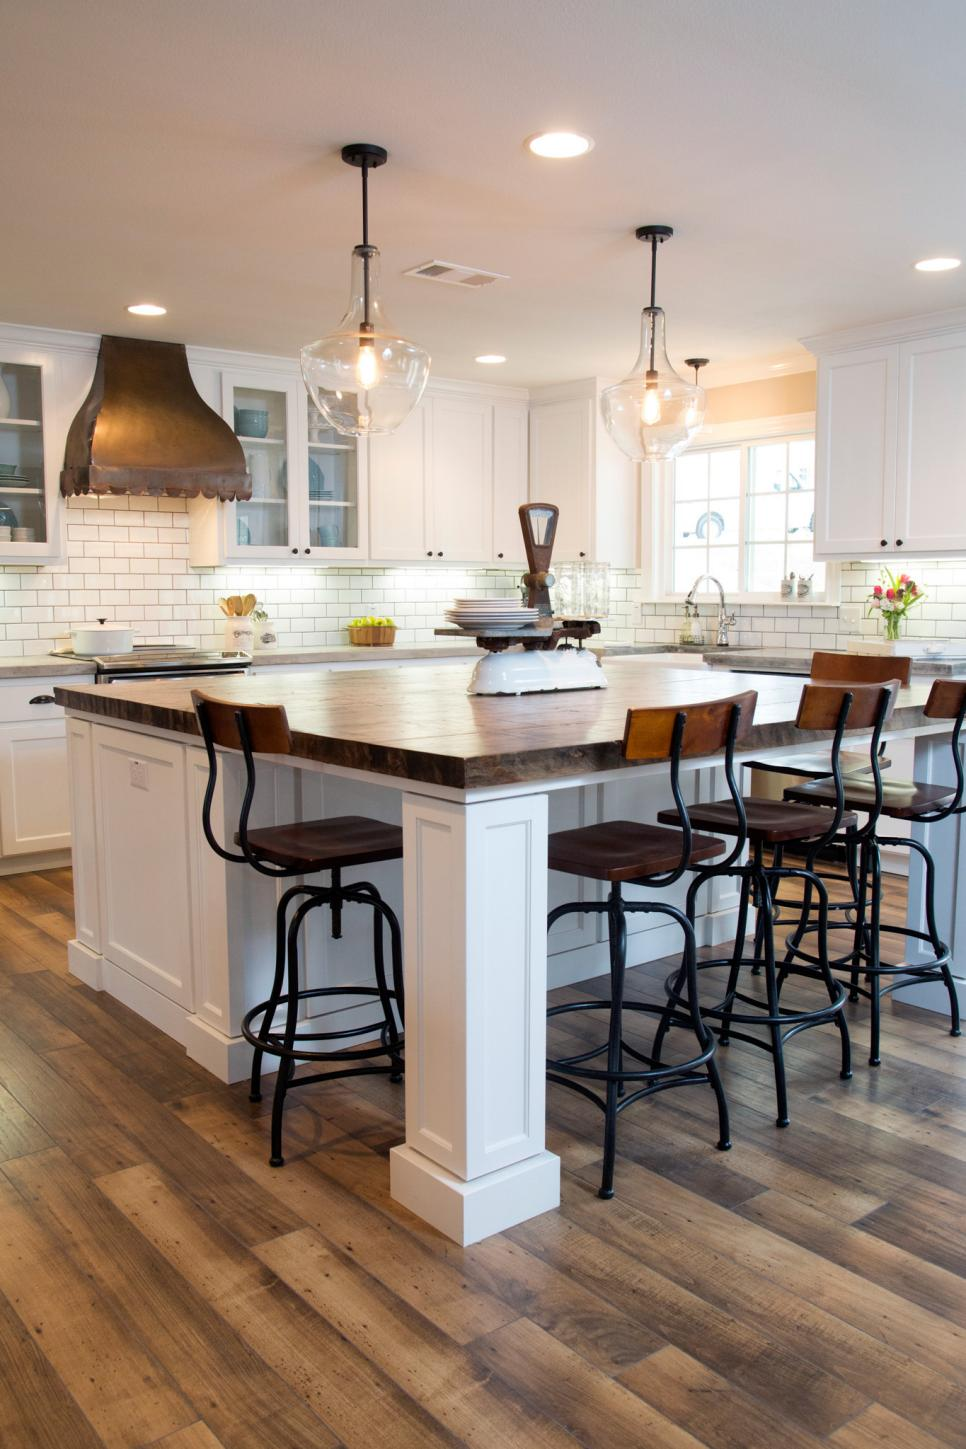 22 Kitchen Island Ideas - I Do Myself on casual kitchen flooring, casual kitchen style, casual kitchen furniture, casual kitchen lighting, casual kitchen dining sets,